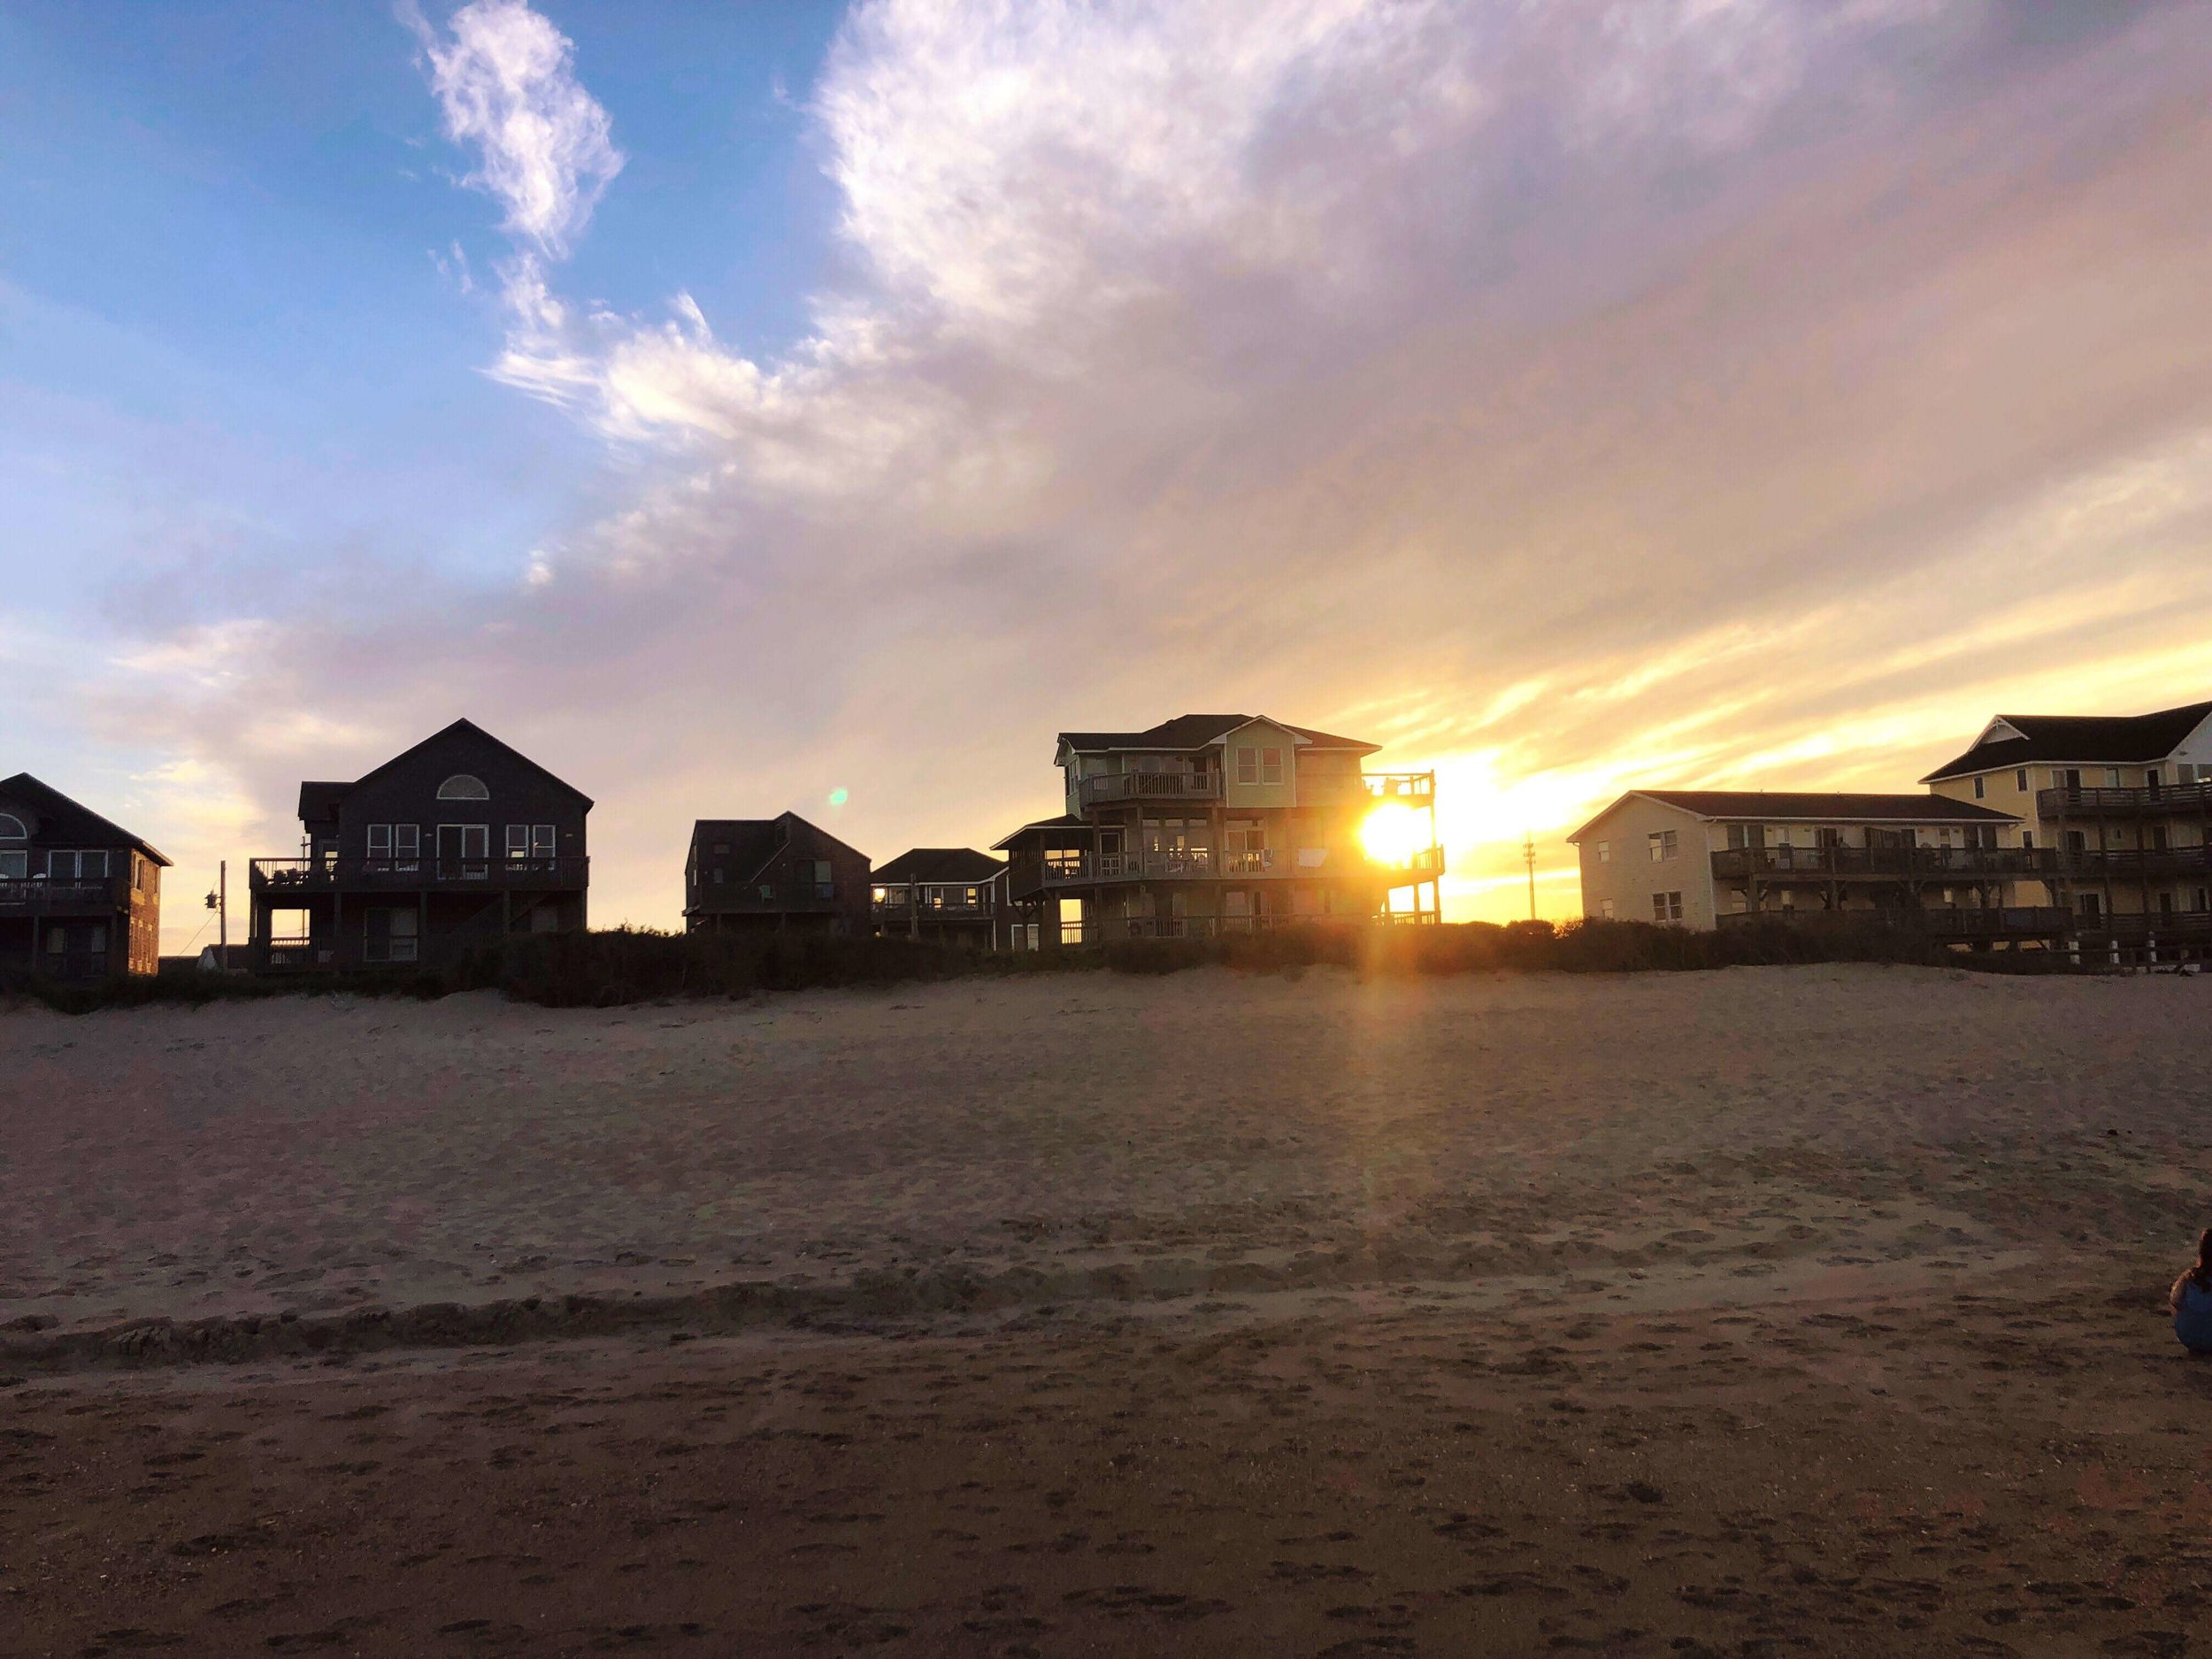 sunset in Buxton, NC Outer Banks